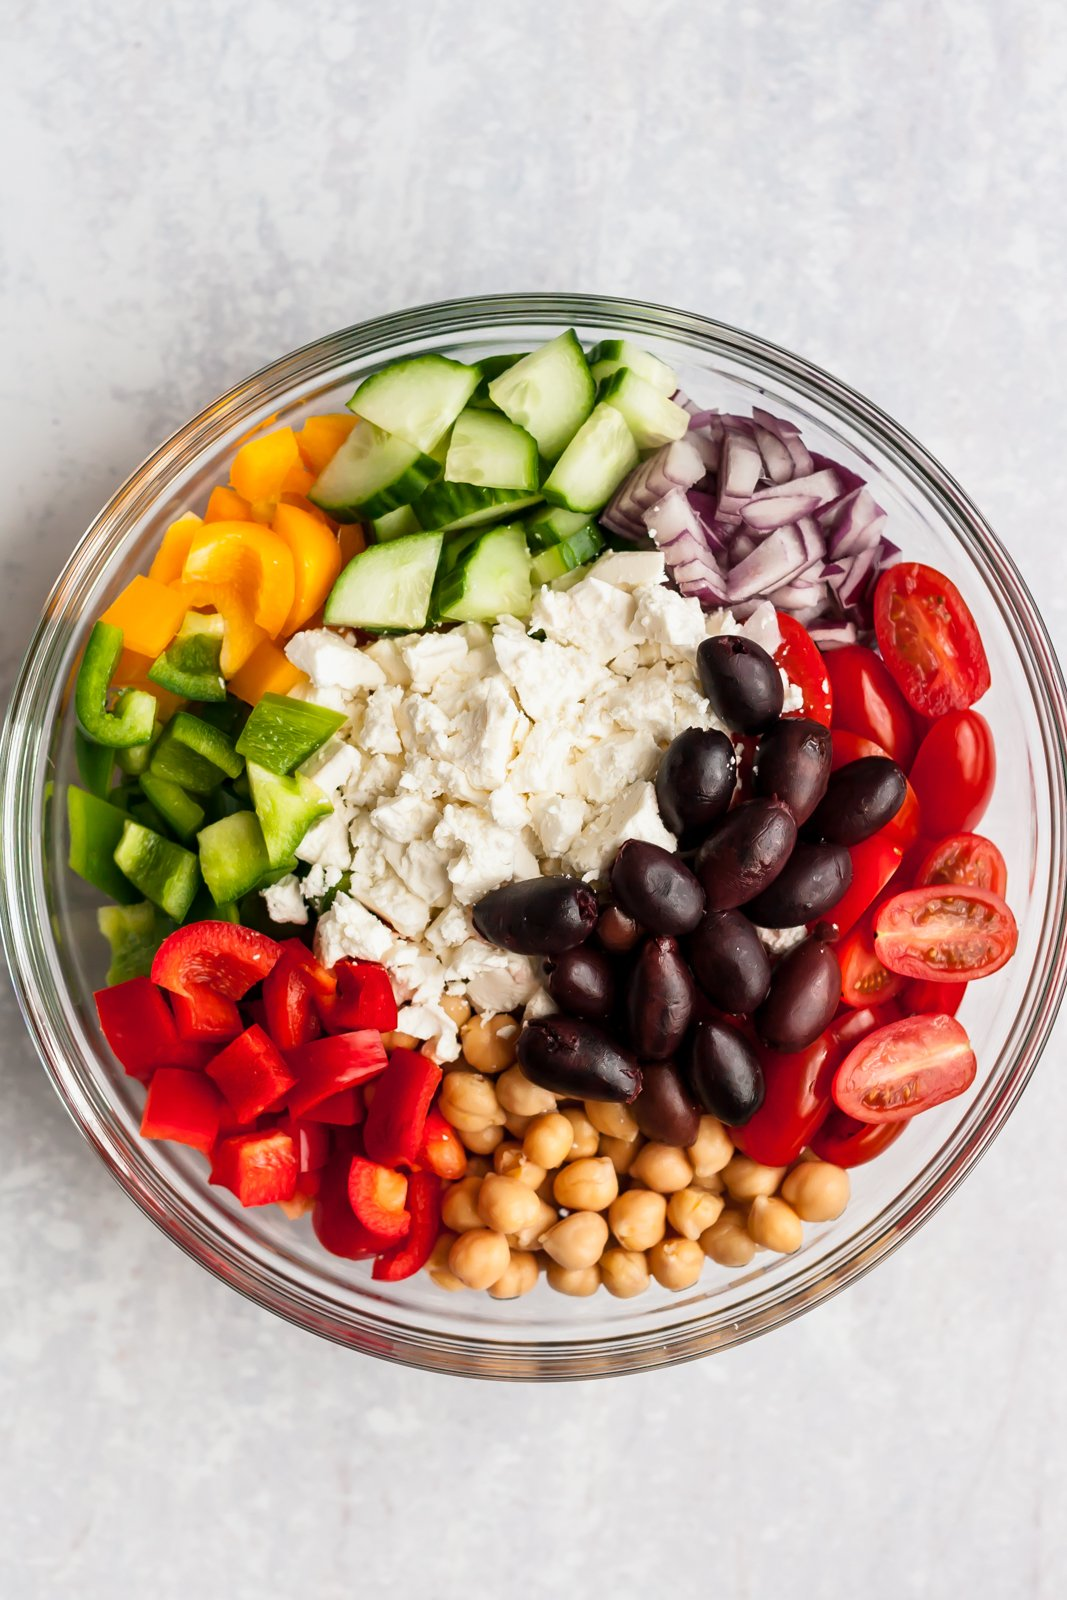 greek chickpea salad ingredients in a bowl on a board